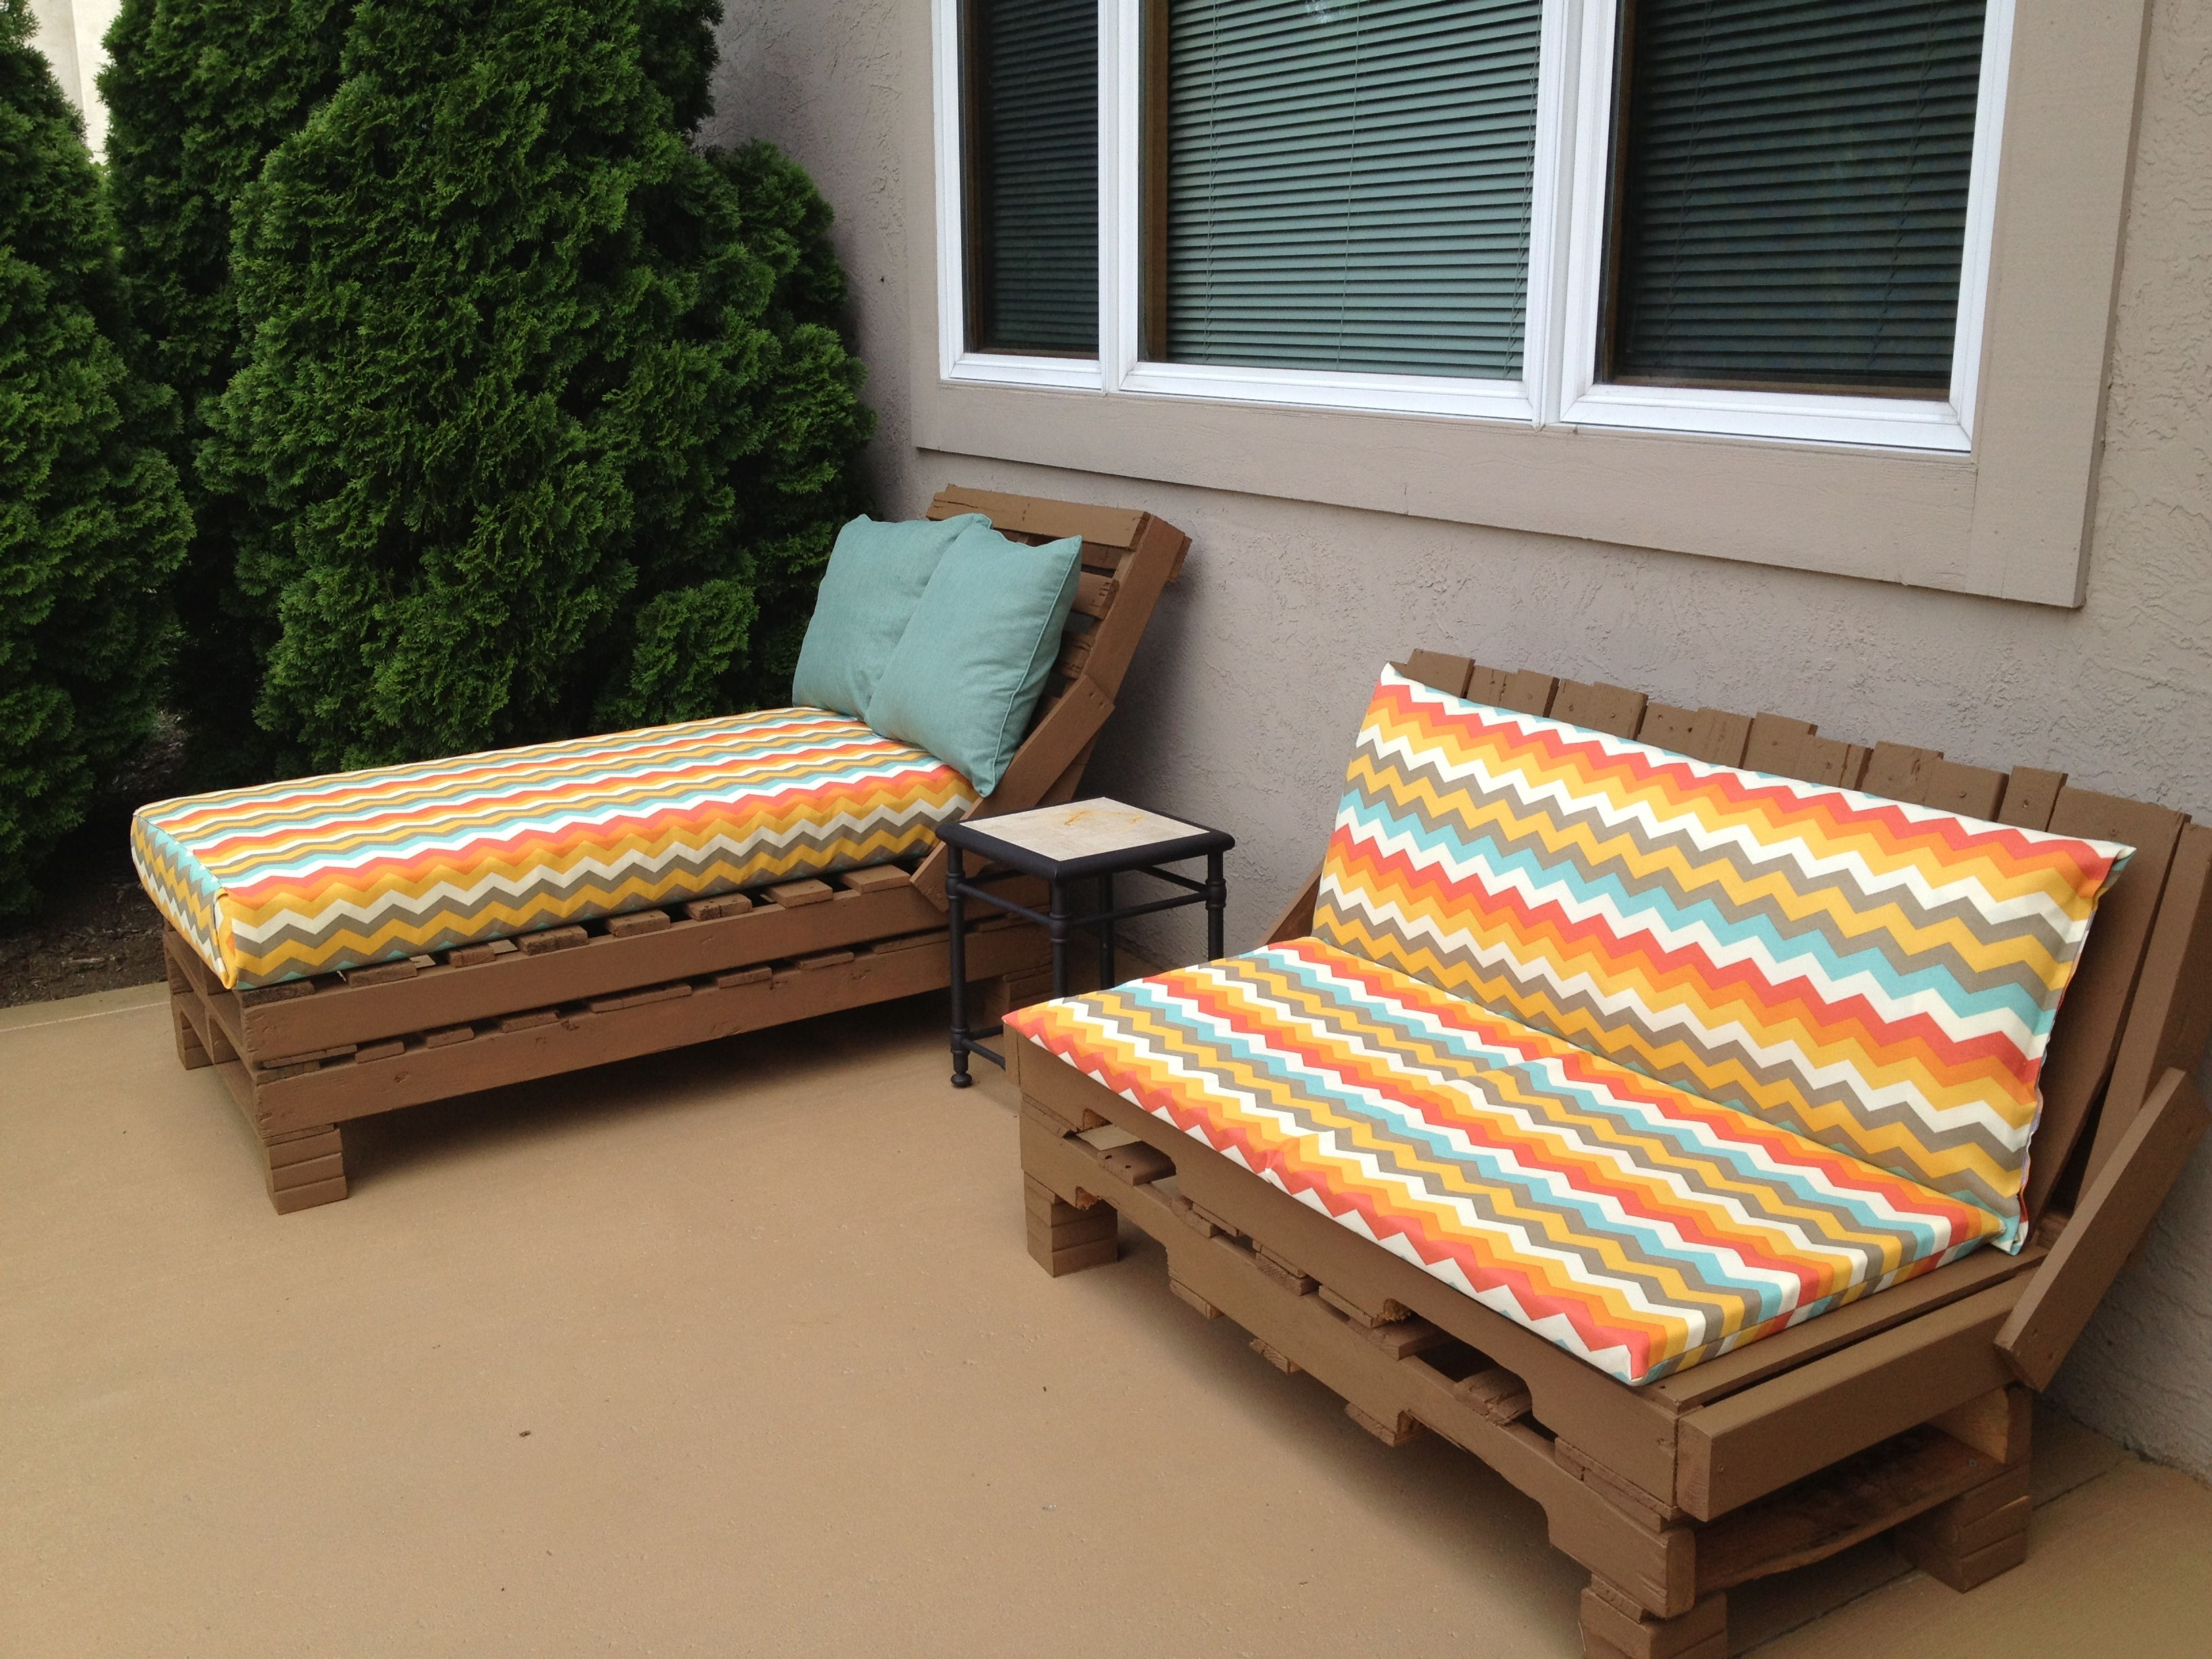 Pallet patio furniture cushions - Pallet Patio Furniture So Easy Stack Pallets Nail Together Paint Cover